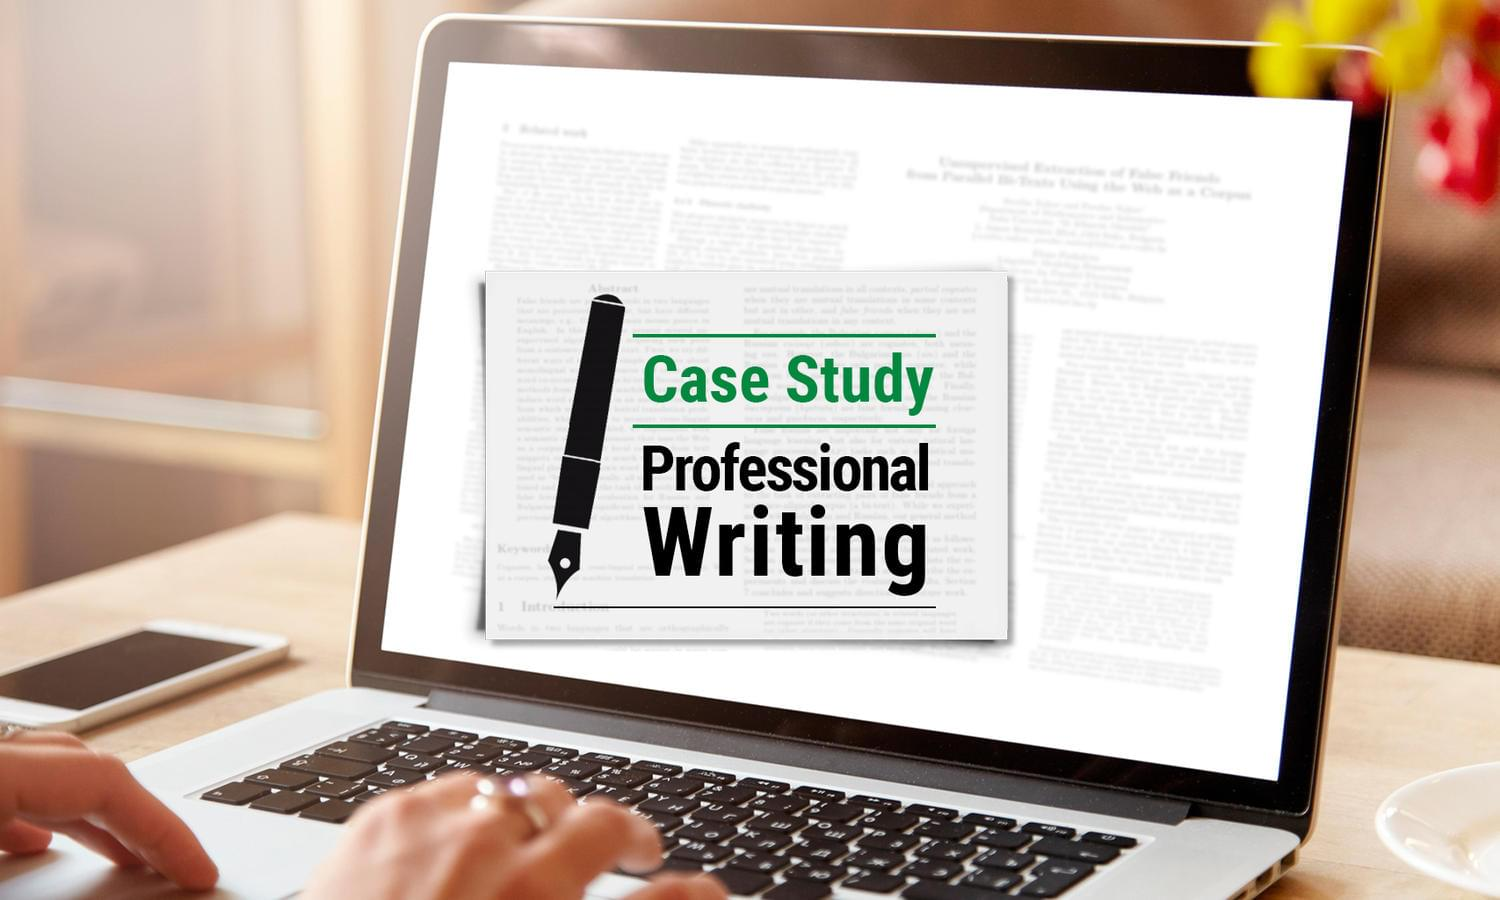 Case Study Professional Writing by madridnyc - 111560